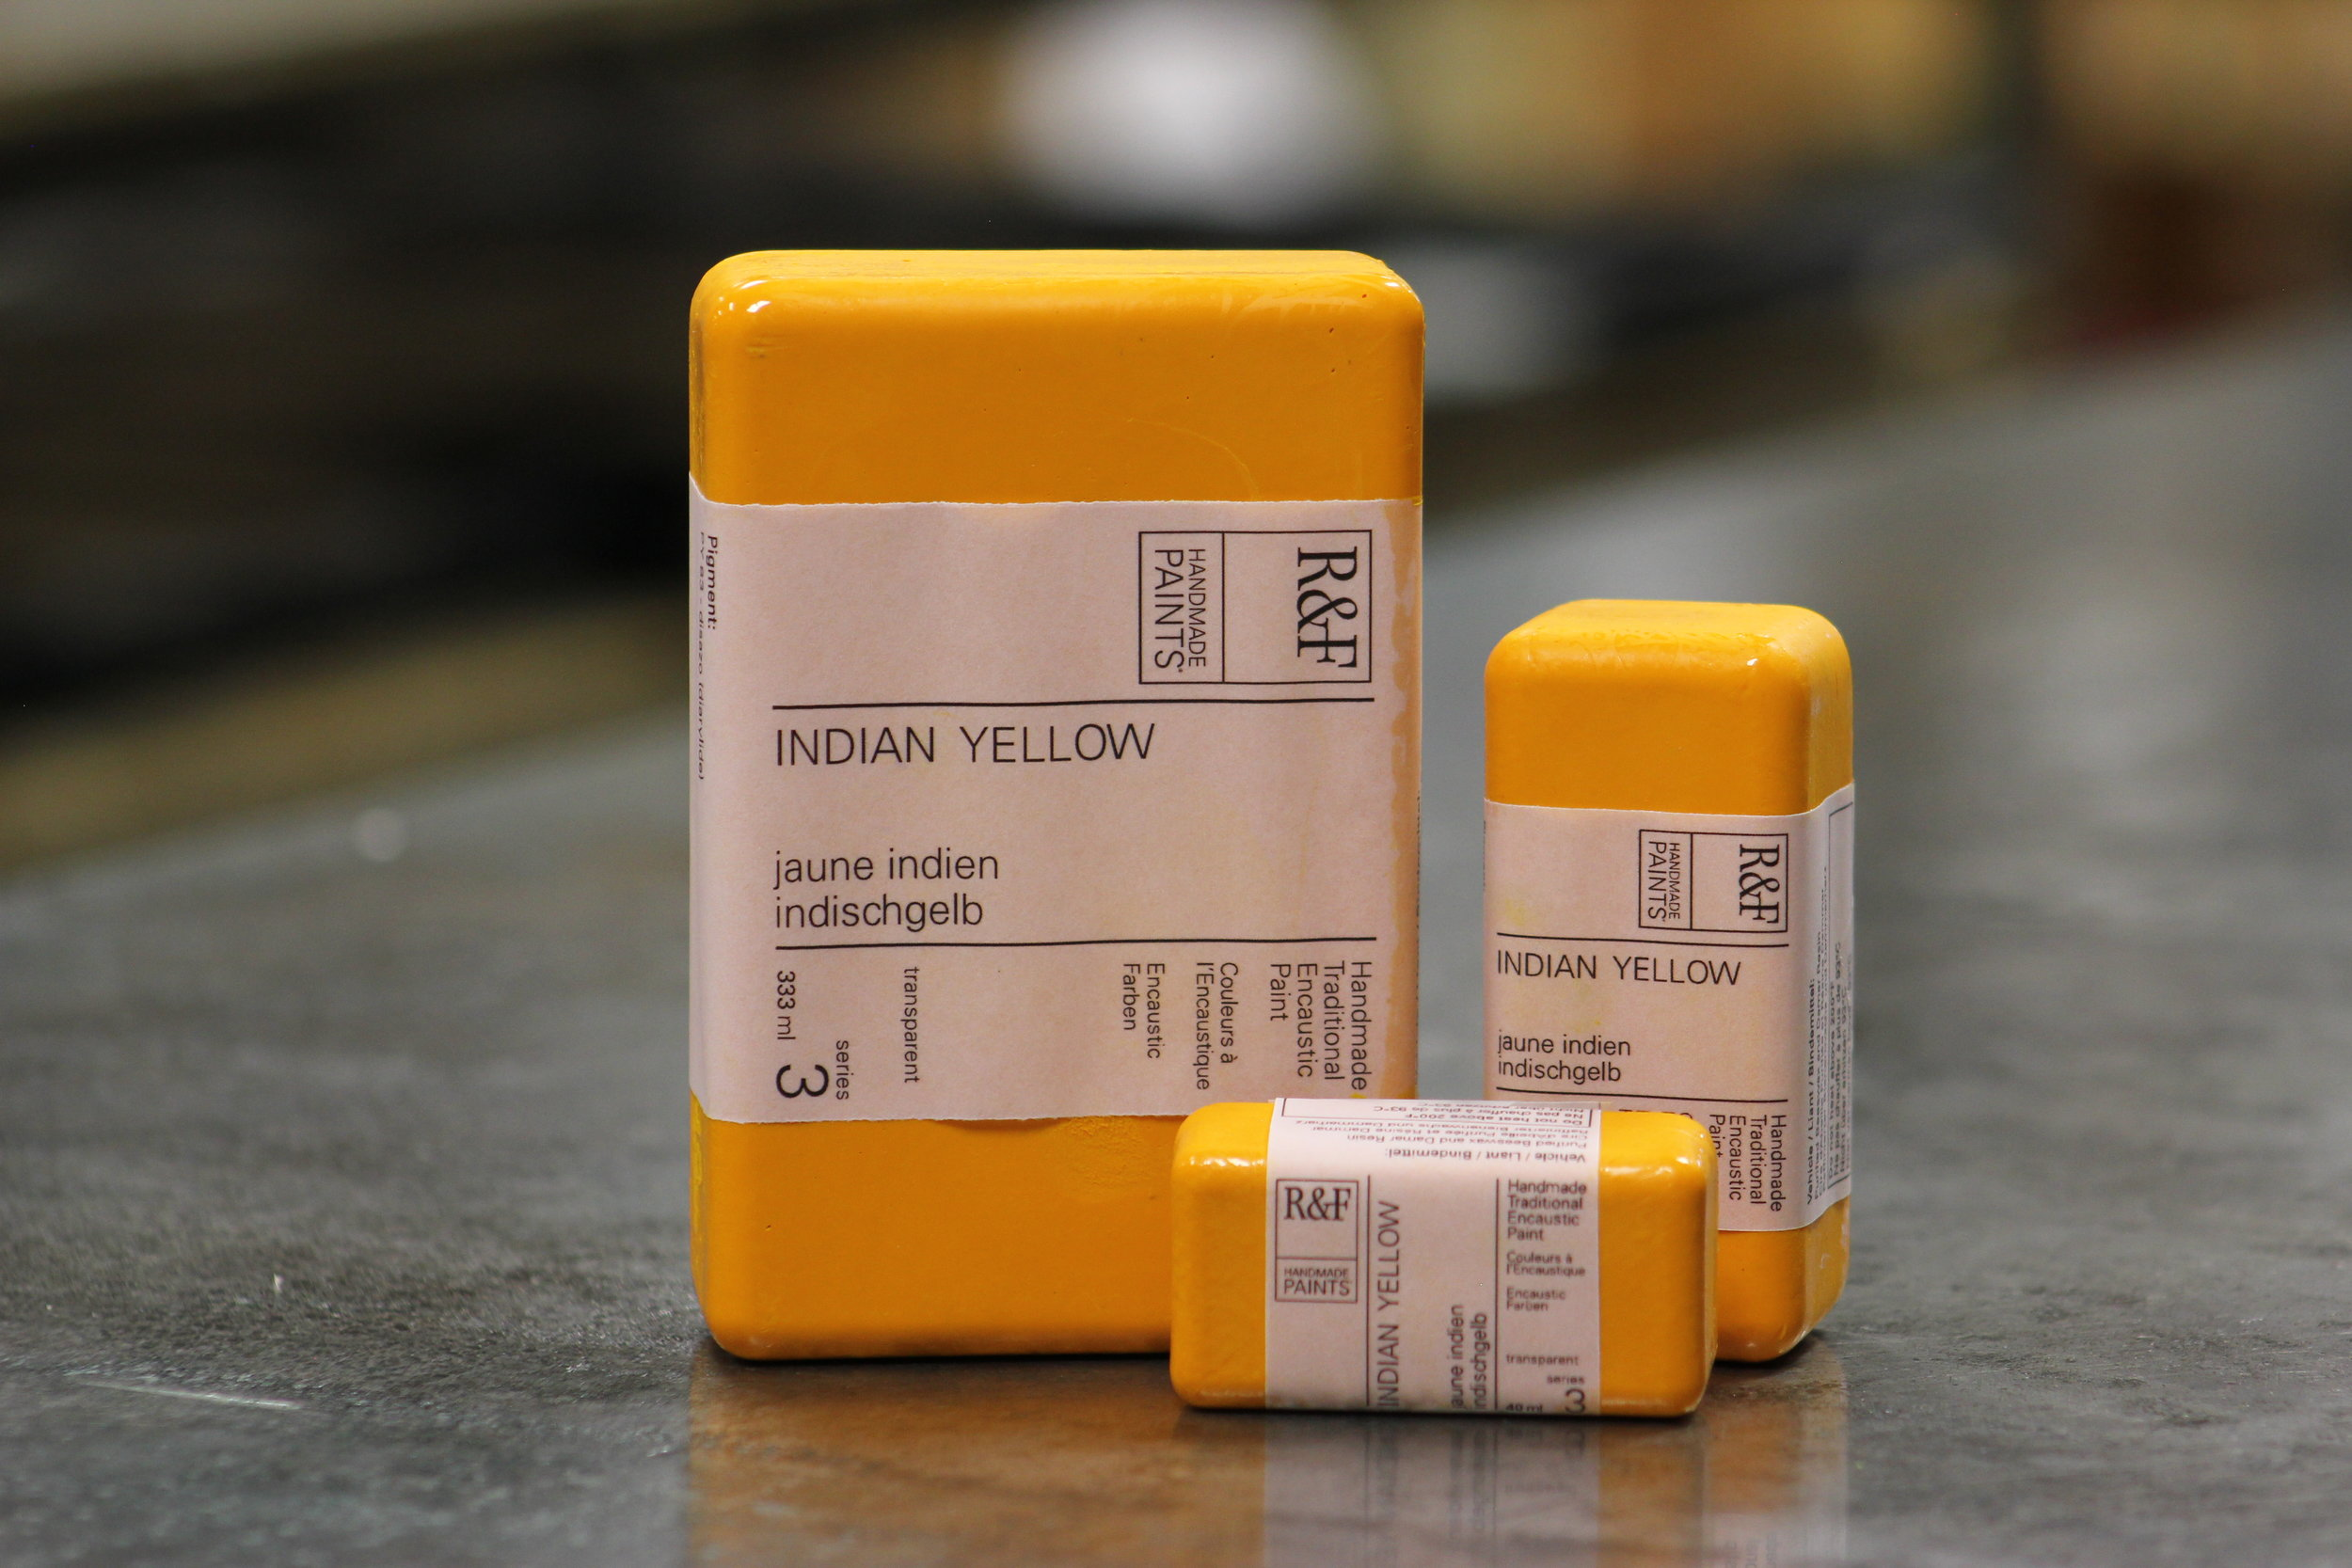 Indian Yellow